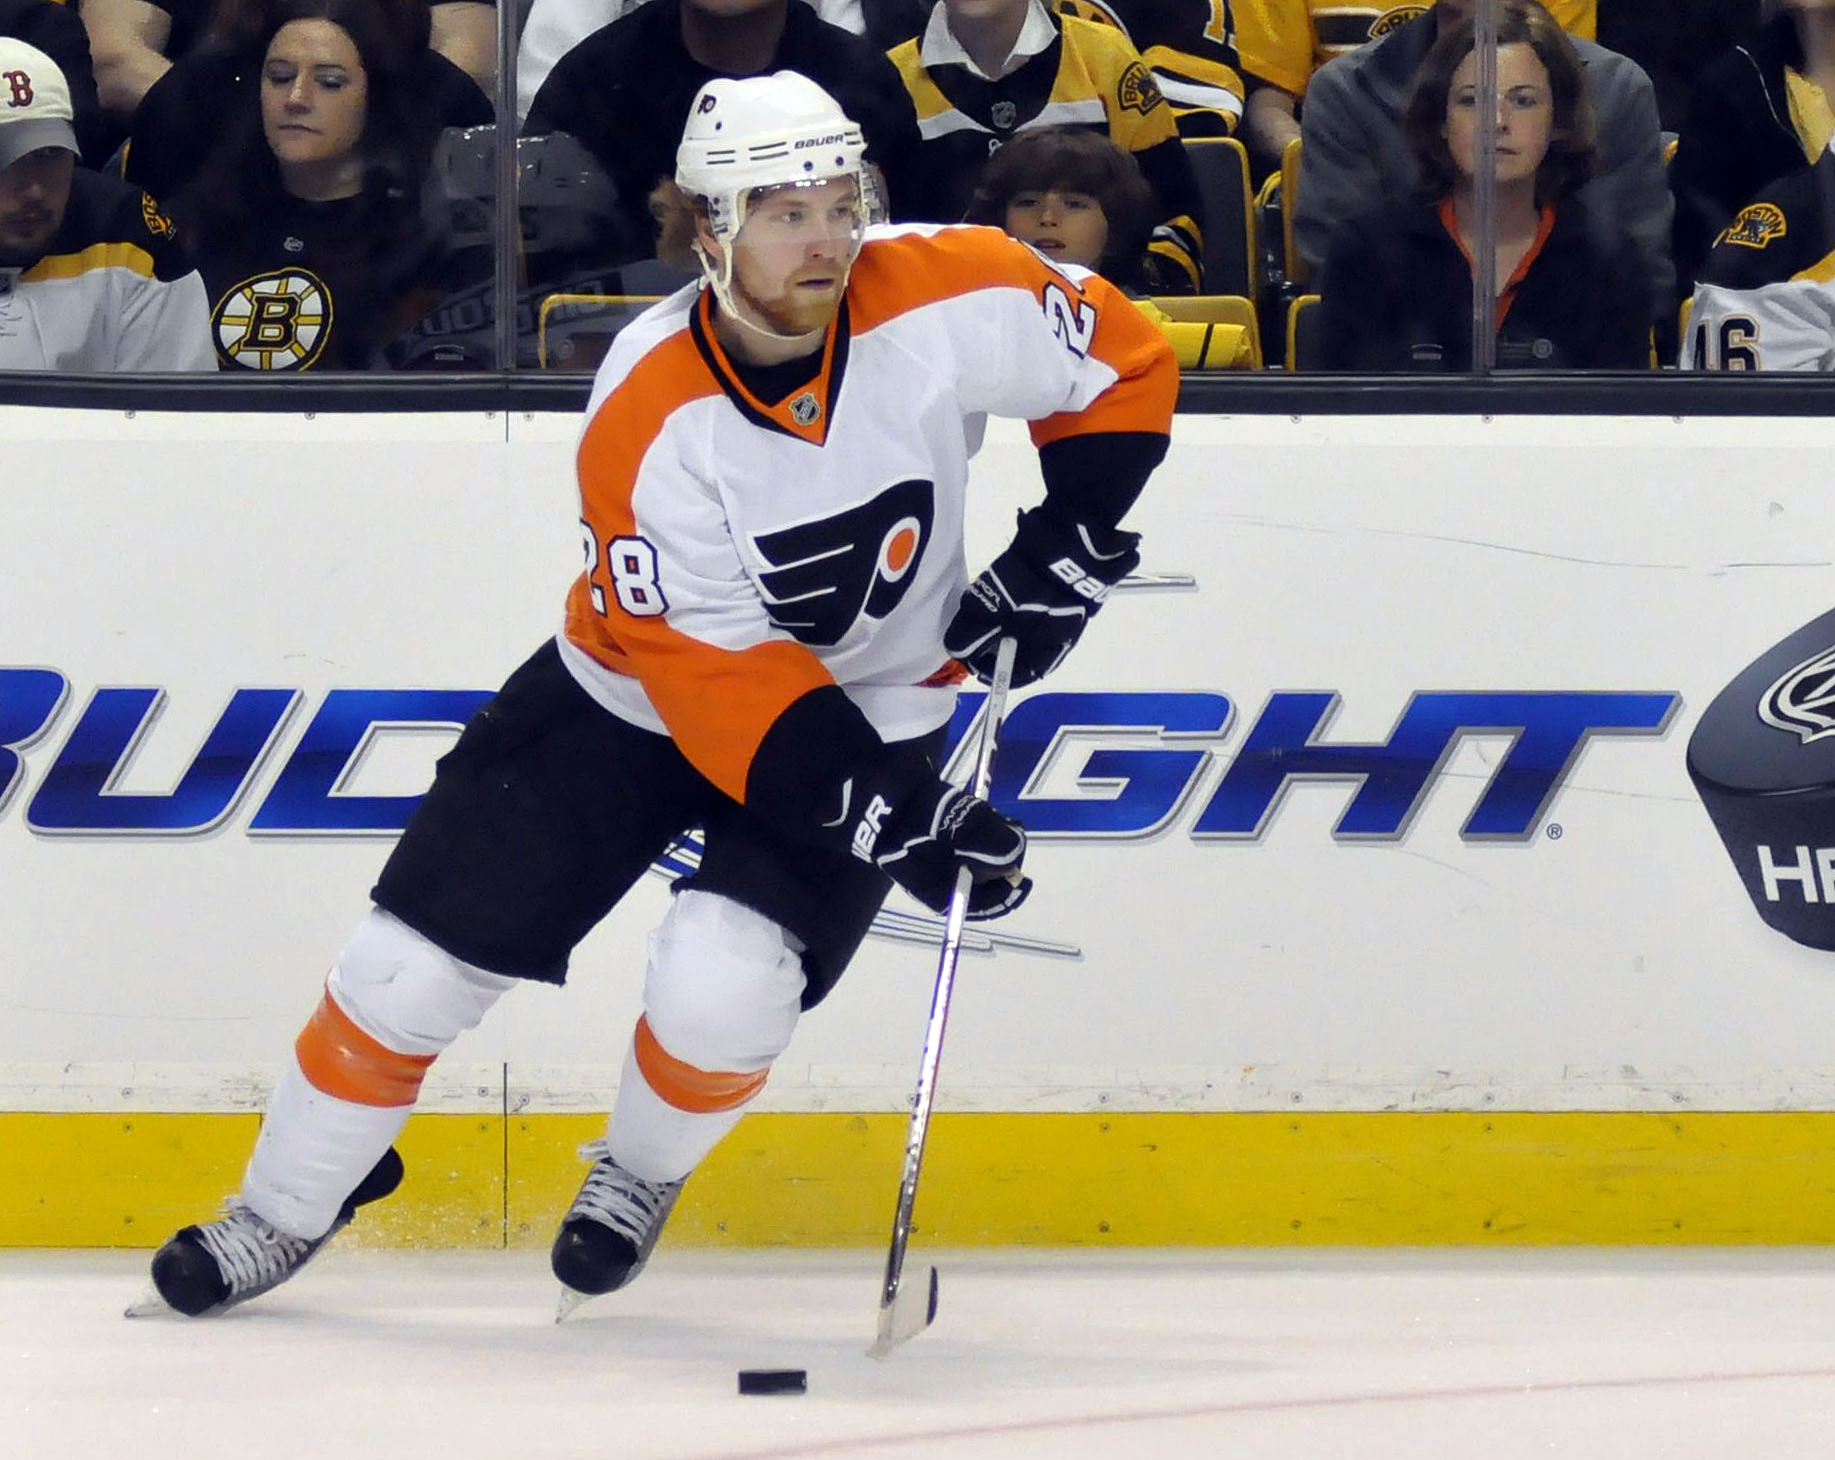 mvp giroux leads first half nhl awards conwayconfidential